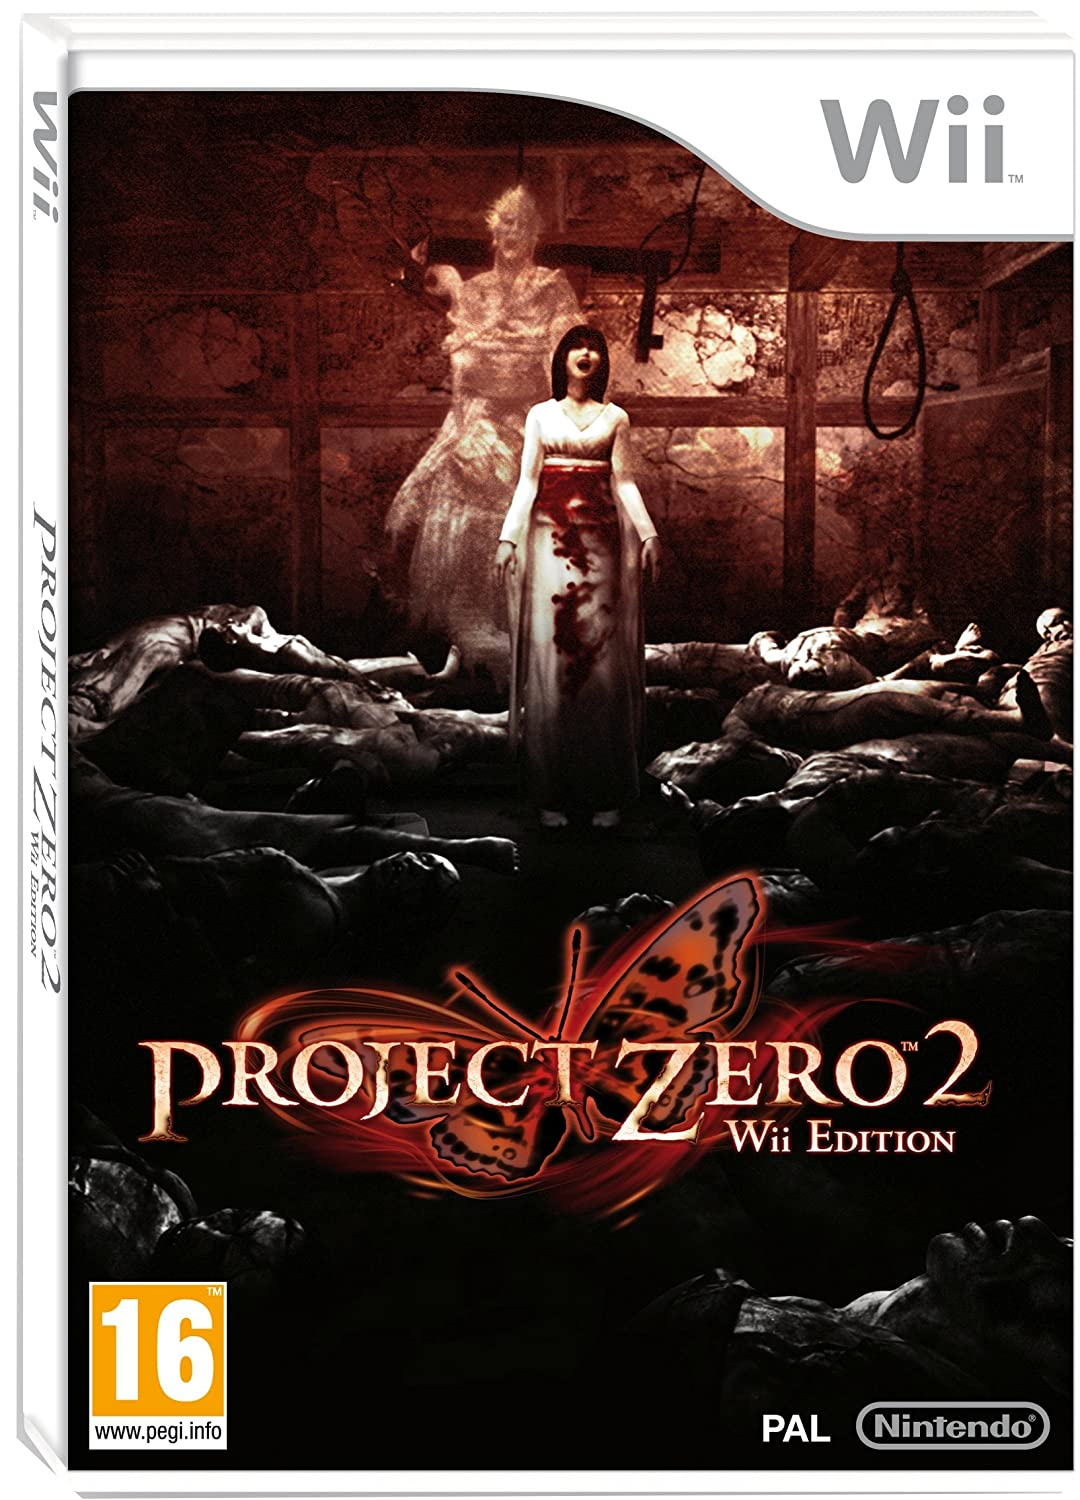 Amazon.com: NINTENDO PROJECT ZERO 2 WII EDITION: Video Games